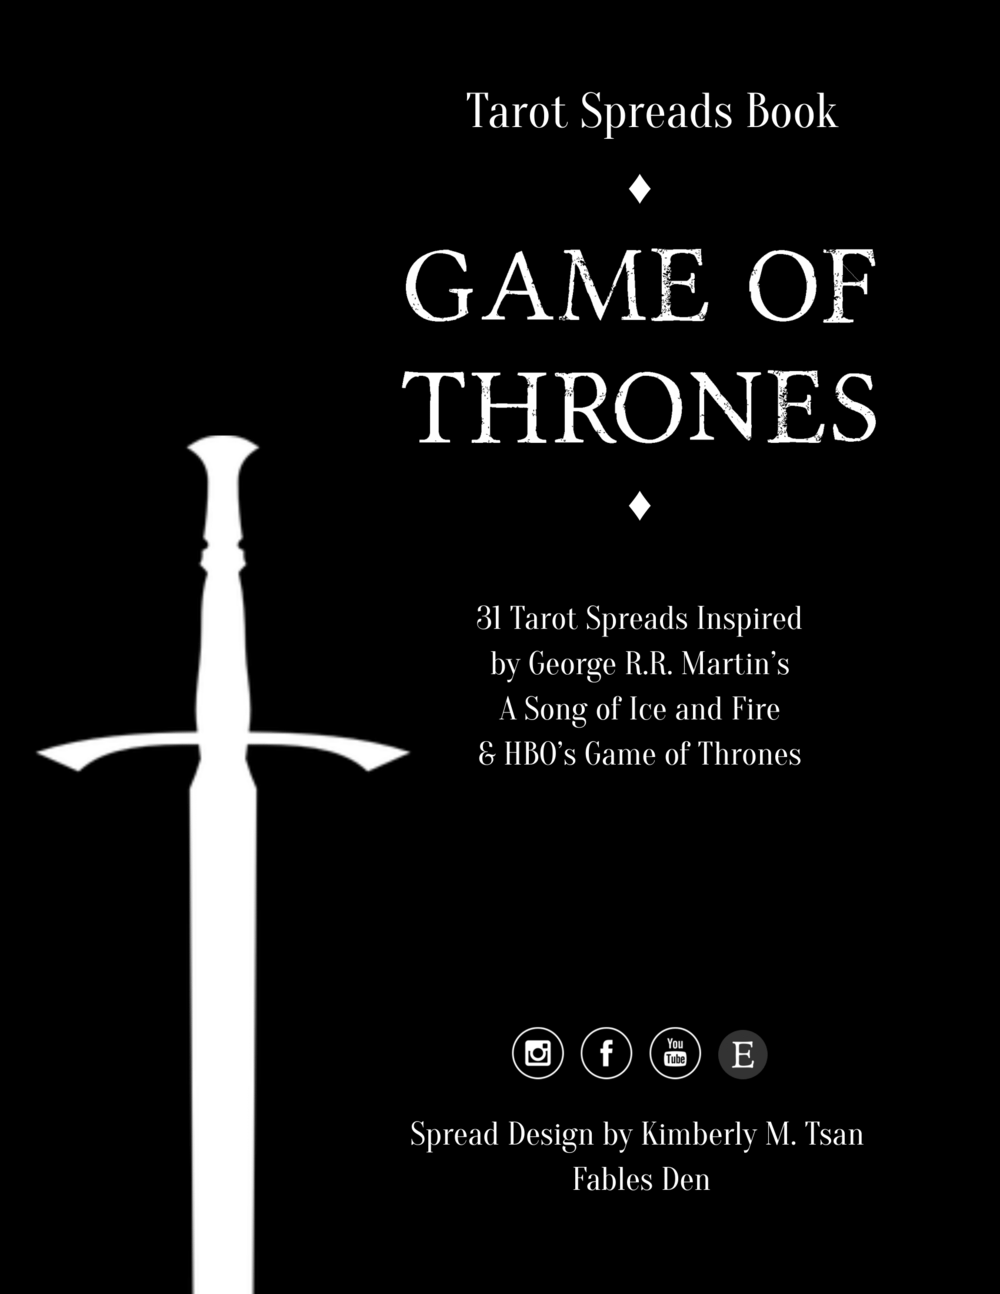 Game of Thrones Spreads Book Winter is Coming Edition-01.png